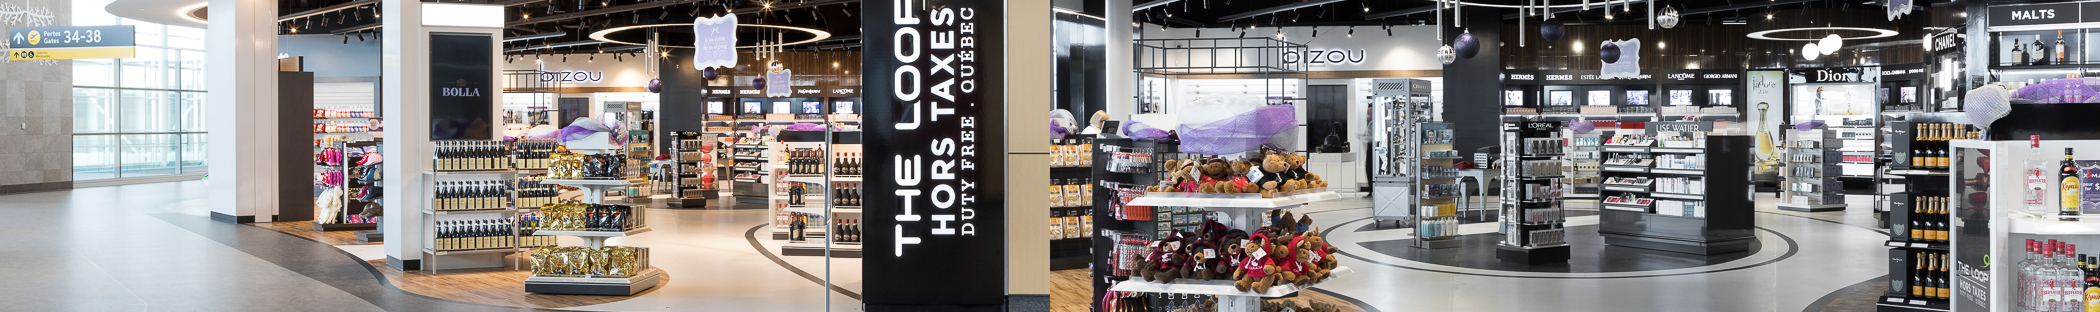 Produits en vente à la boutique The Loop Hors Taxes de l'Aéroport international Jean-Lesage de Québec (YQB)